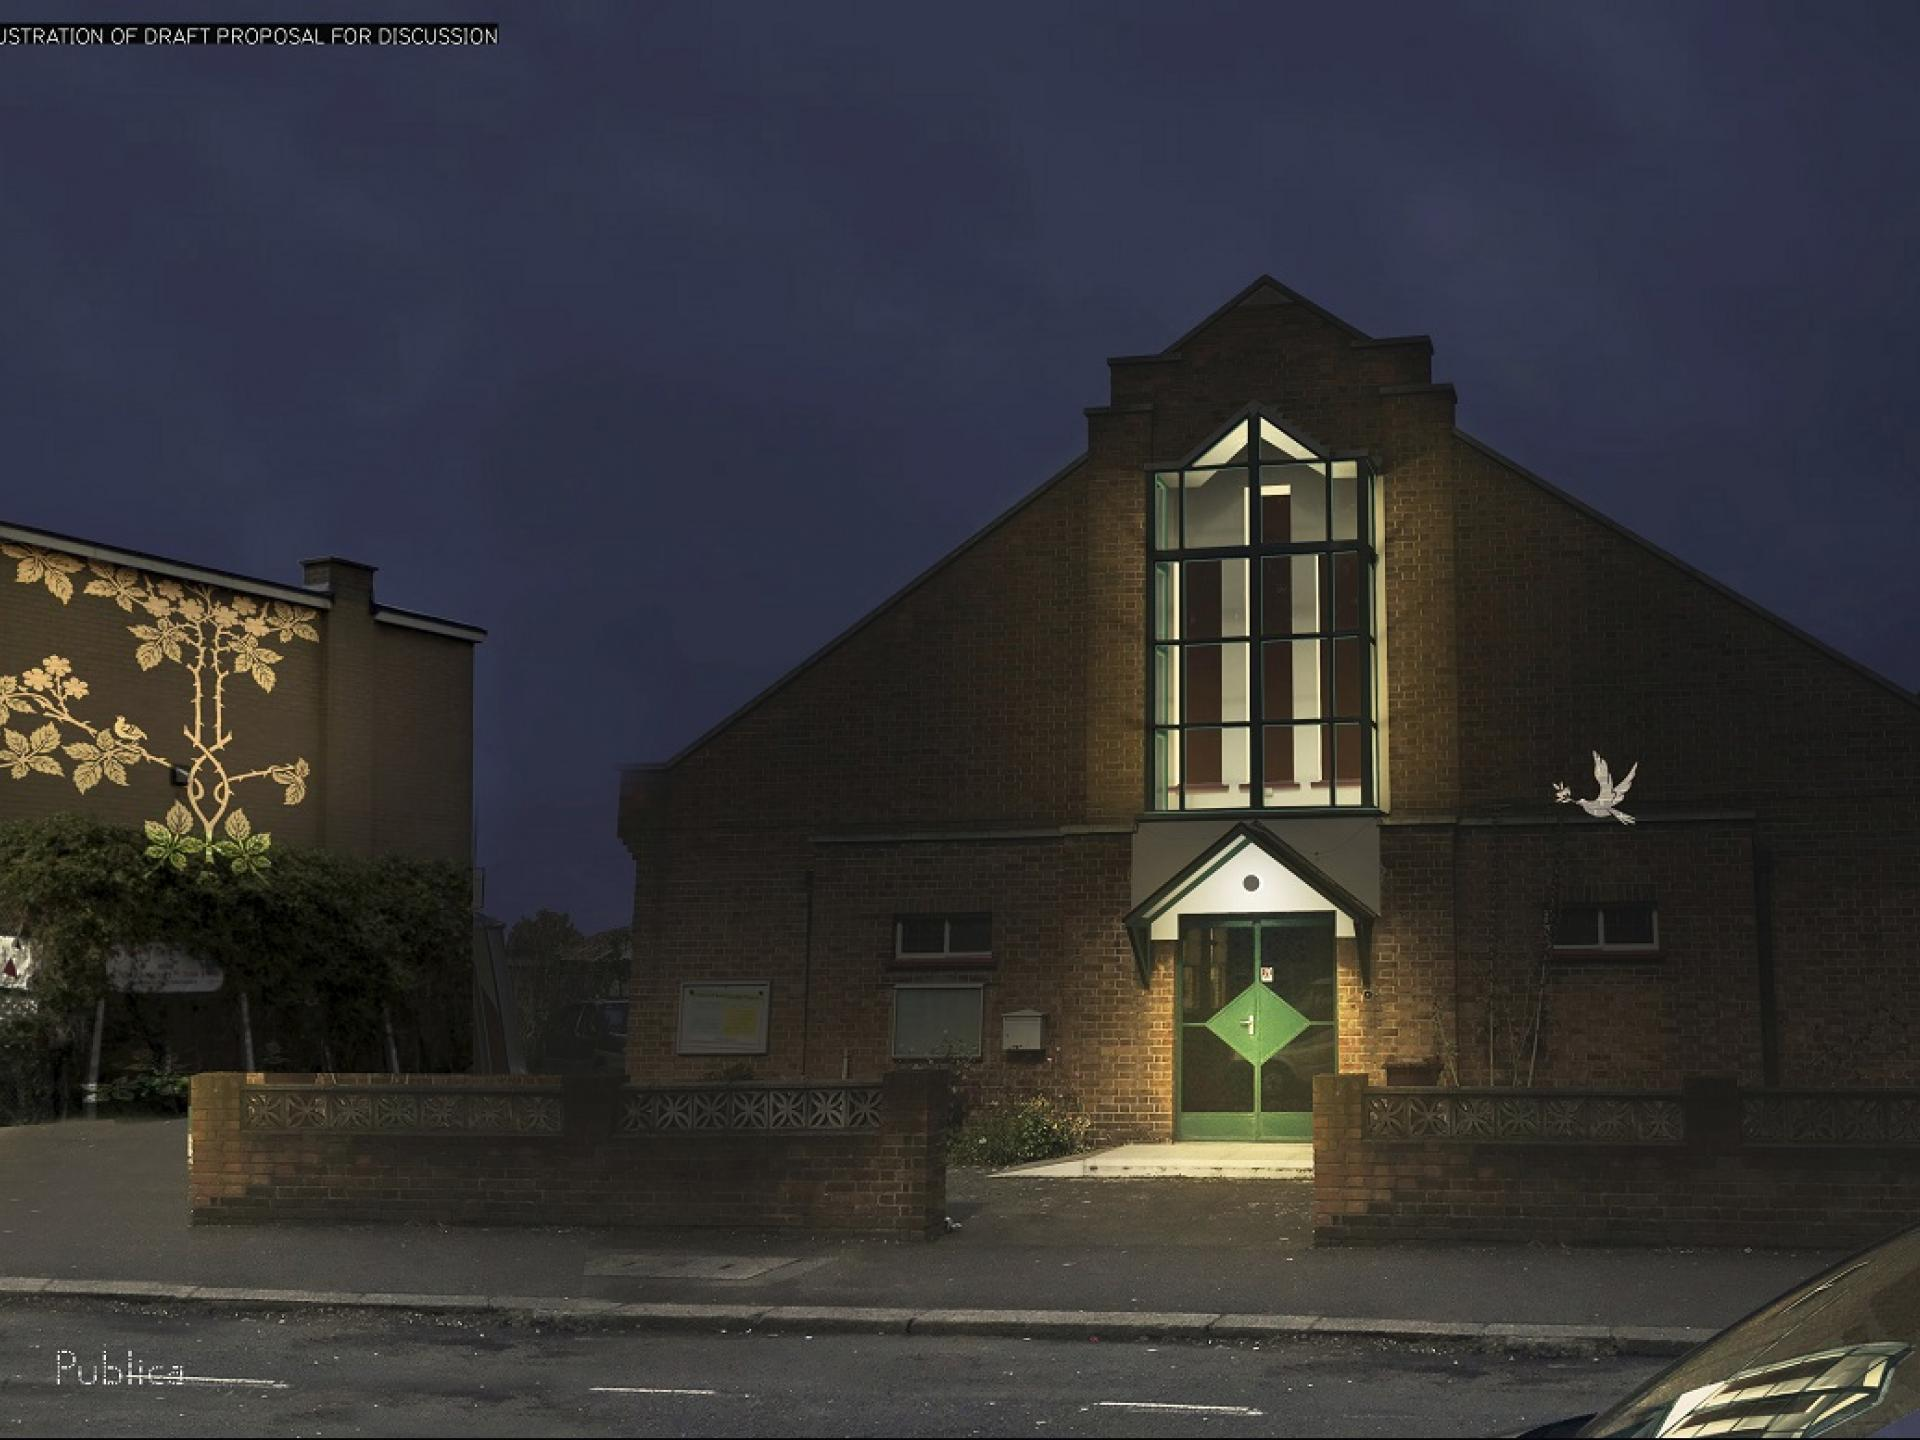 Visualisation of projected graphics and architectural lighting